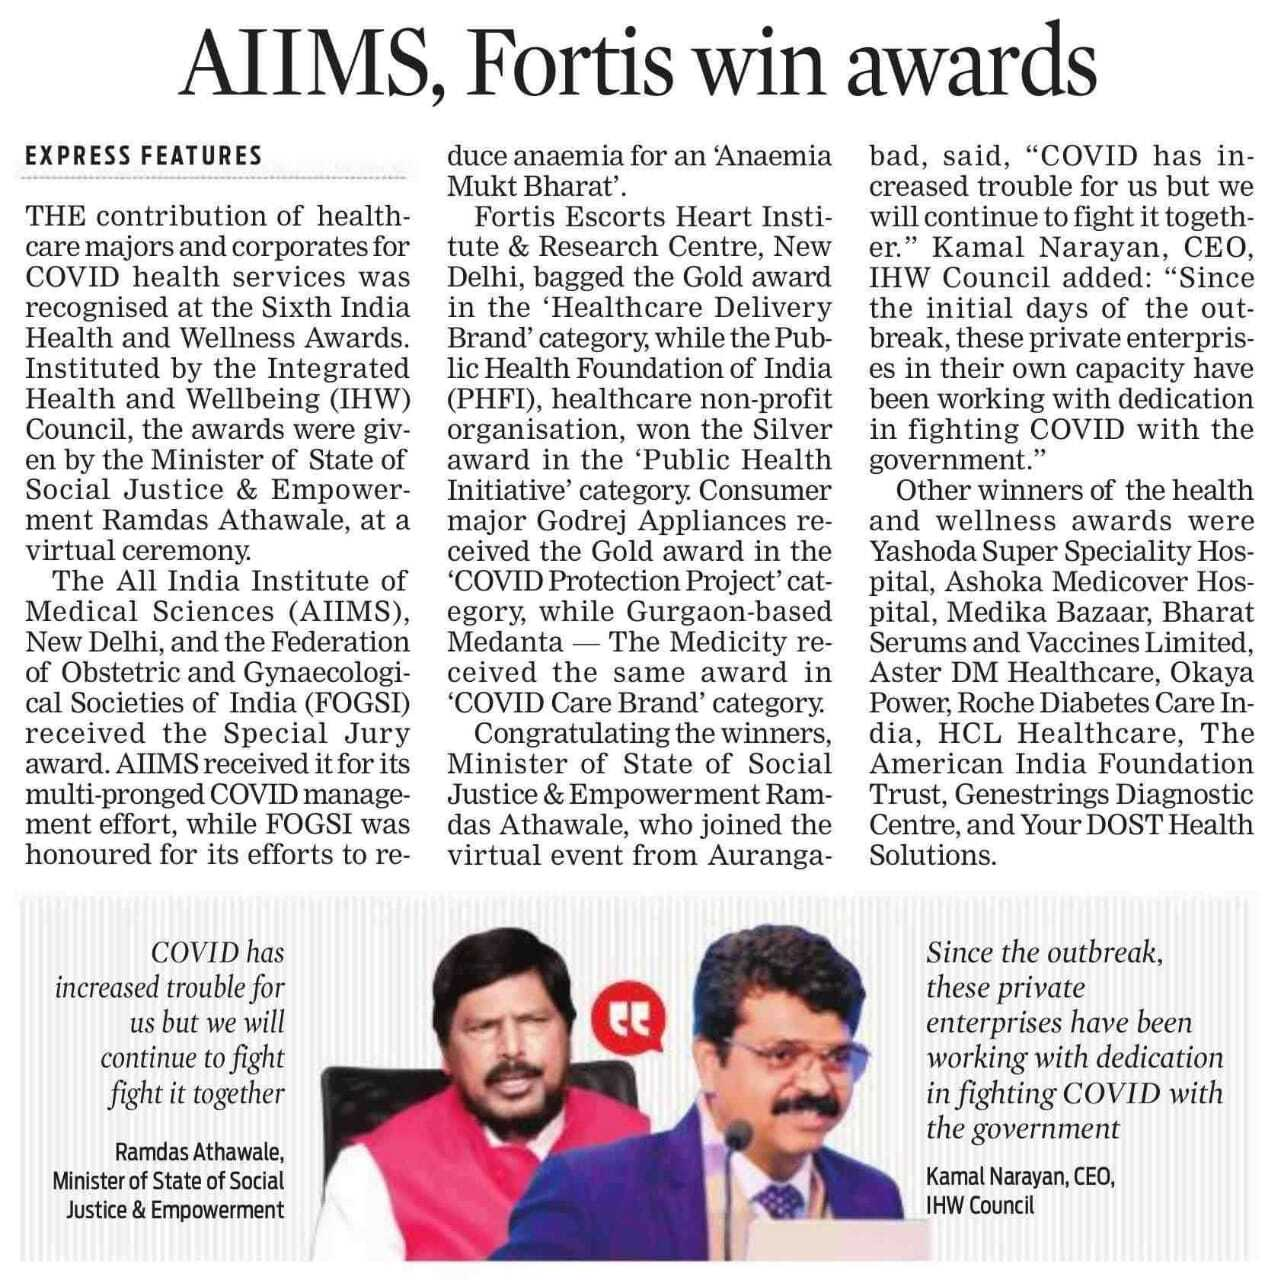 Dr. AIIMS, Fortis win awards